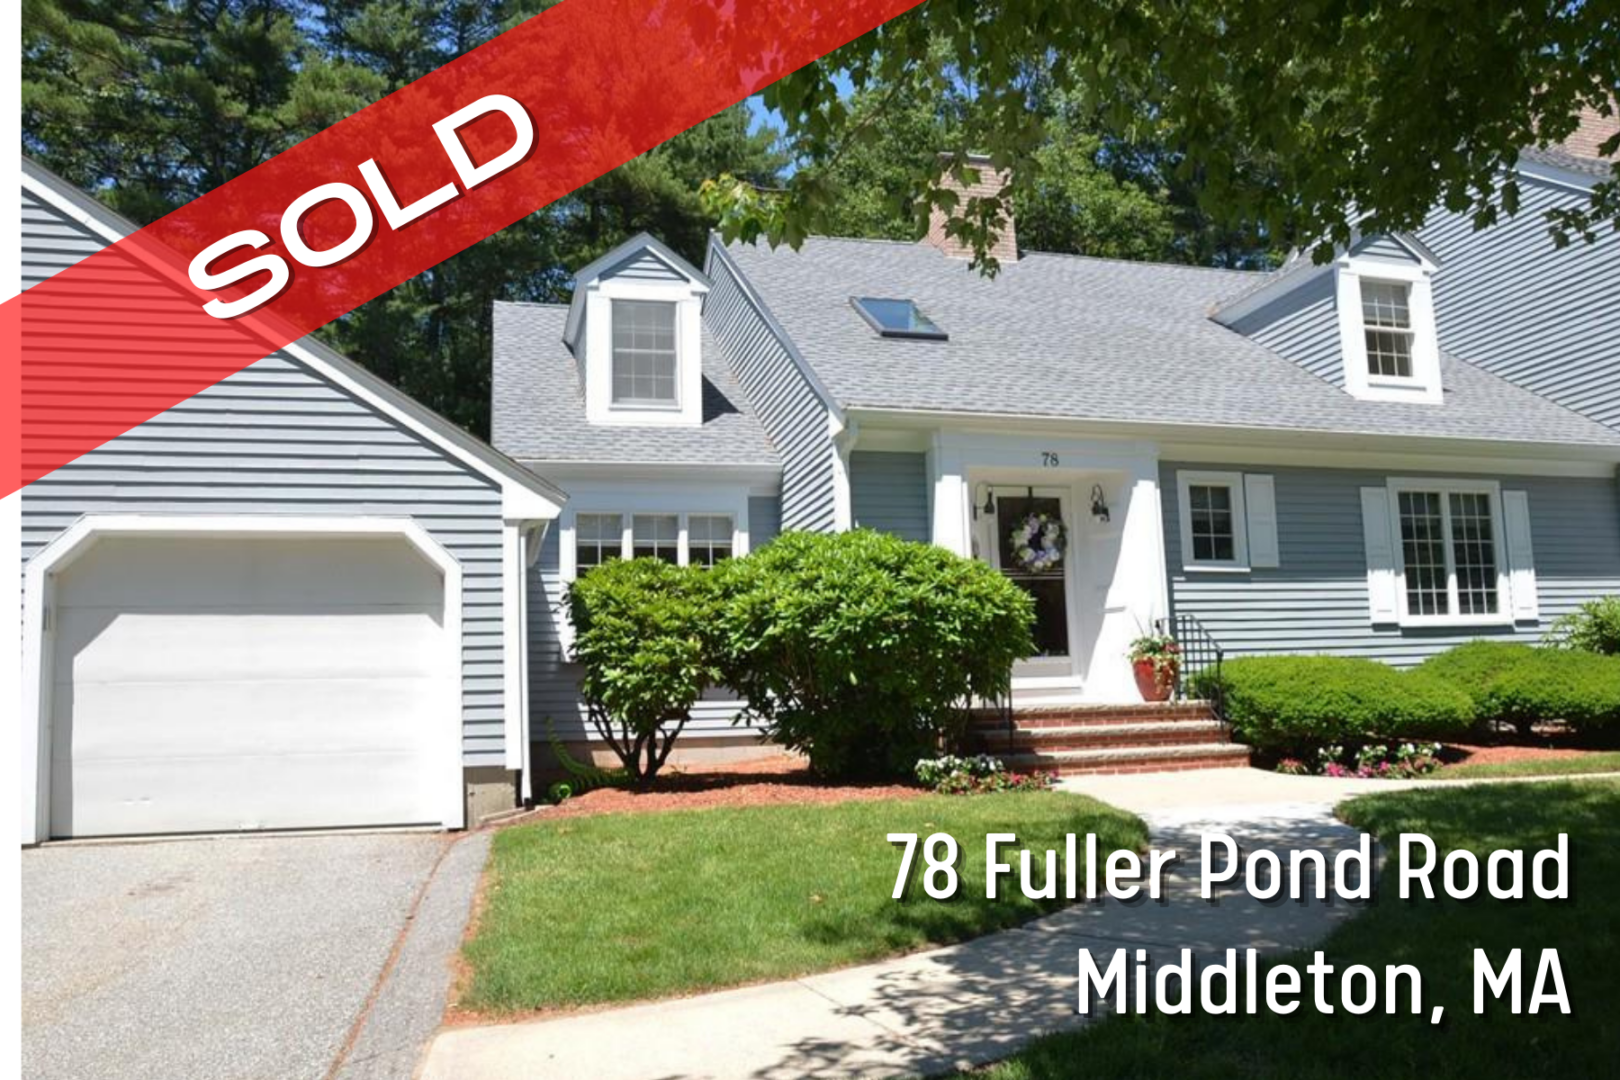 Family House Sold in Middleton, MA